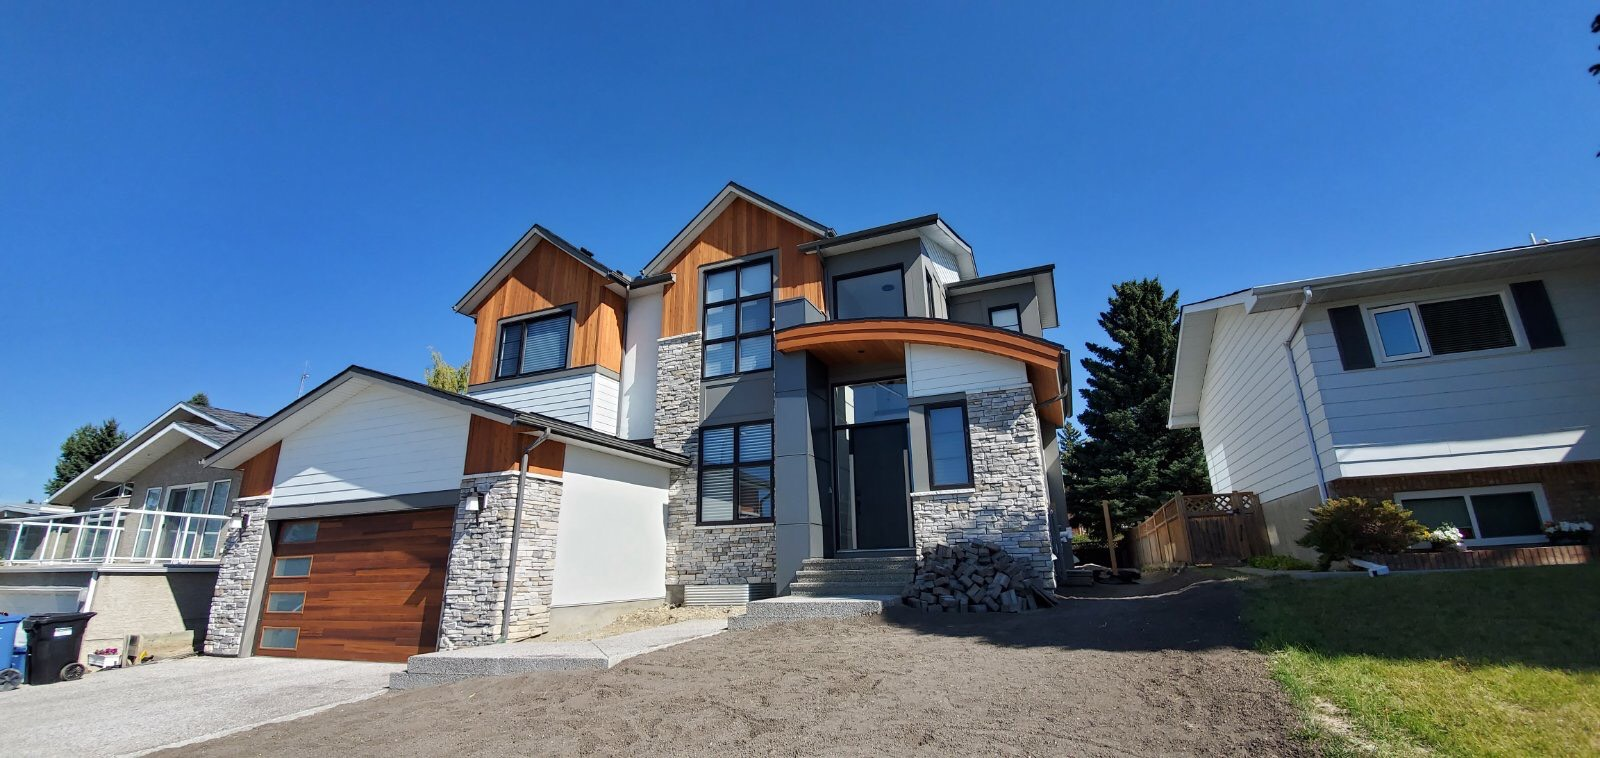 Siding installation for a private house project in Calgary